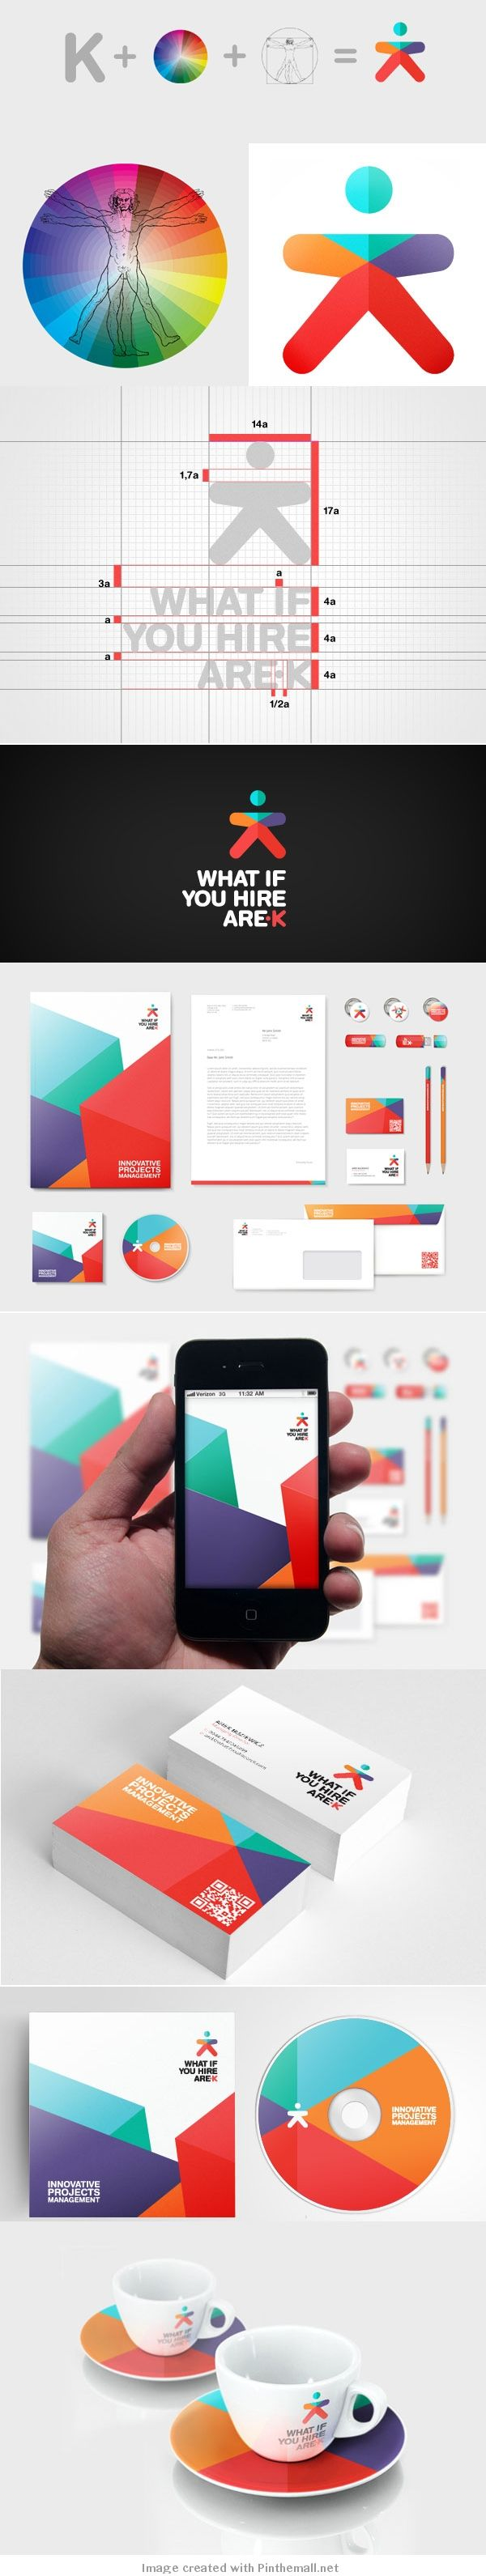 Colorful, geometric, and abstract logo, branding, and corporate identity for/by Arek Creative.